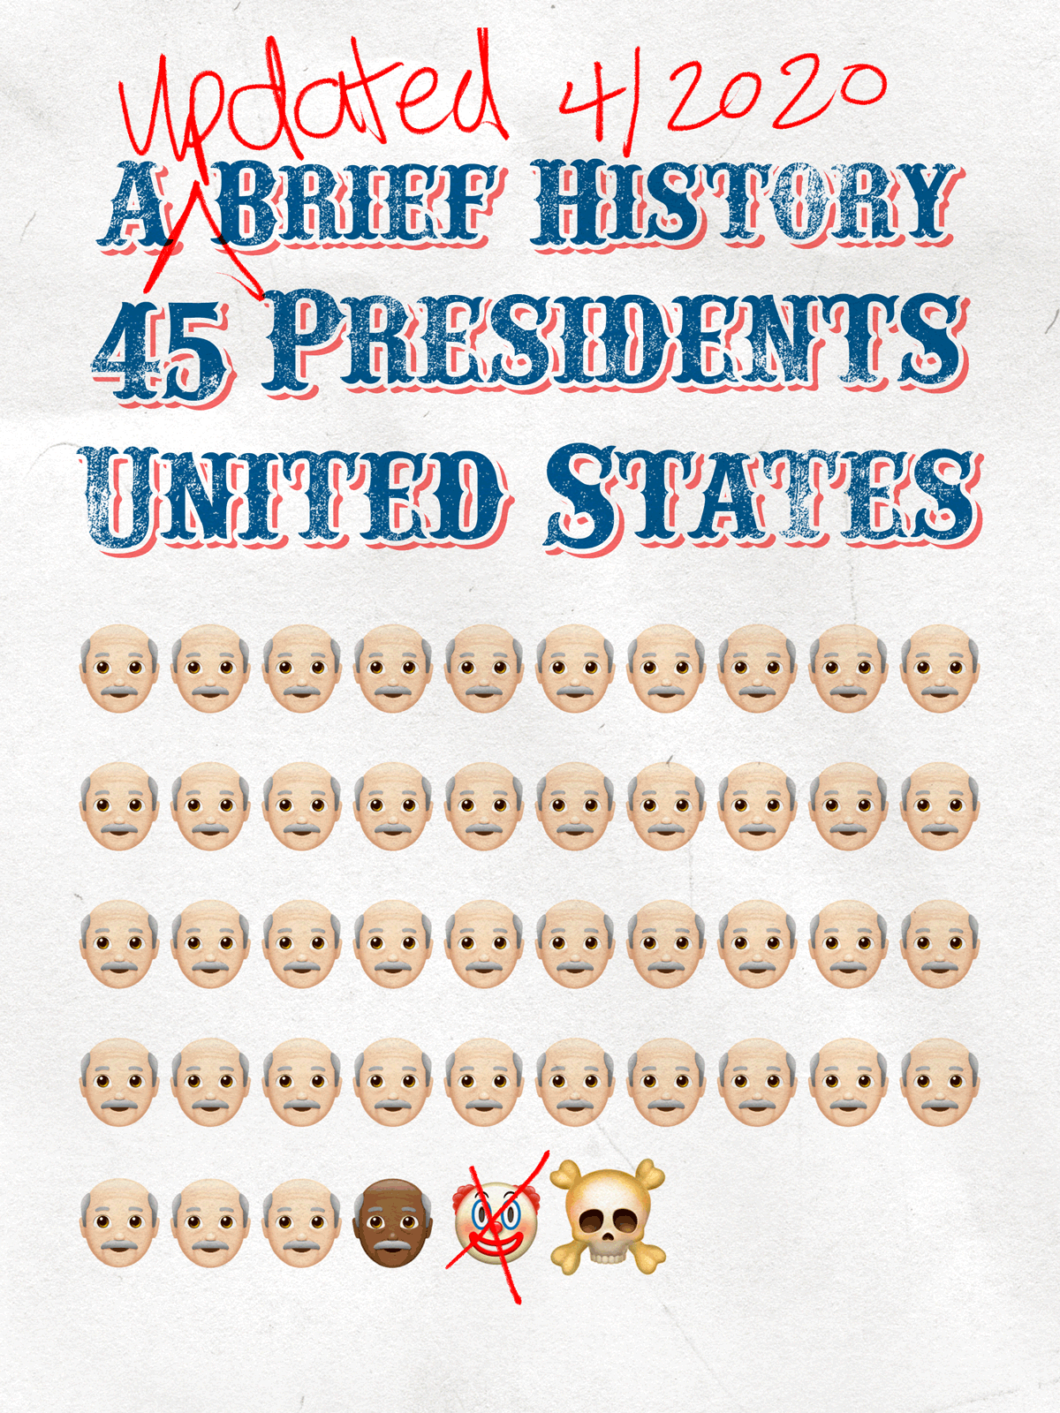 45 Presidents Briefly UPDATED